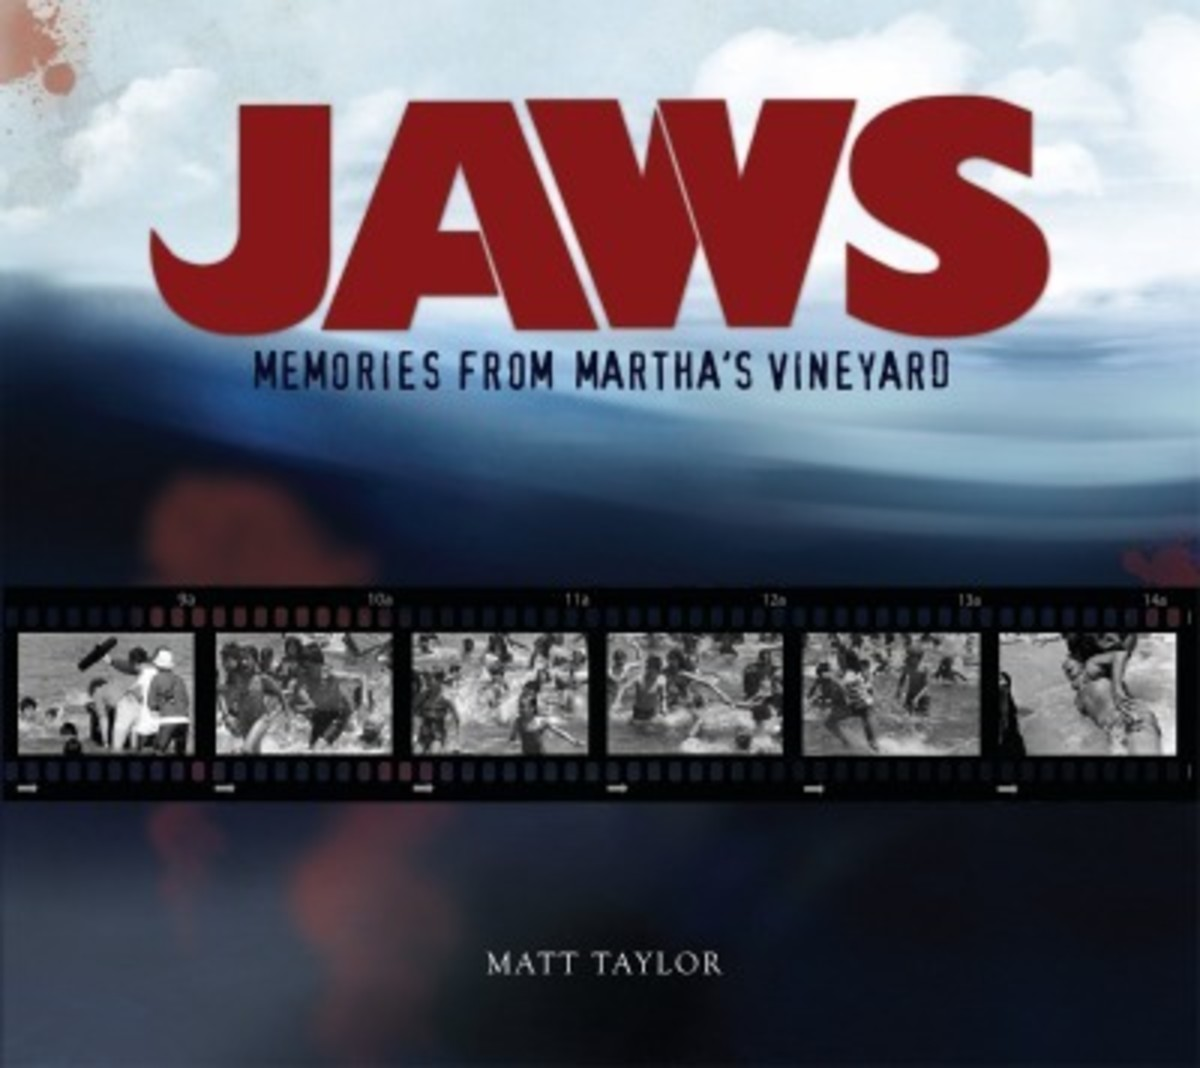 JAWS: Memories From Martha's Vineyard - This volume sets a new, very high standard for behind-the-scenes movie books.